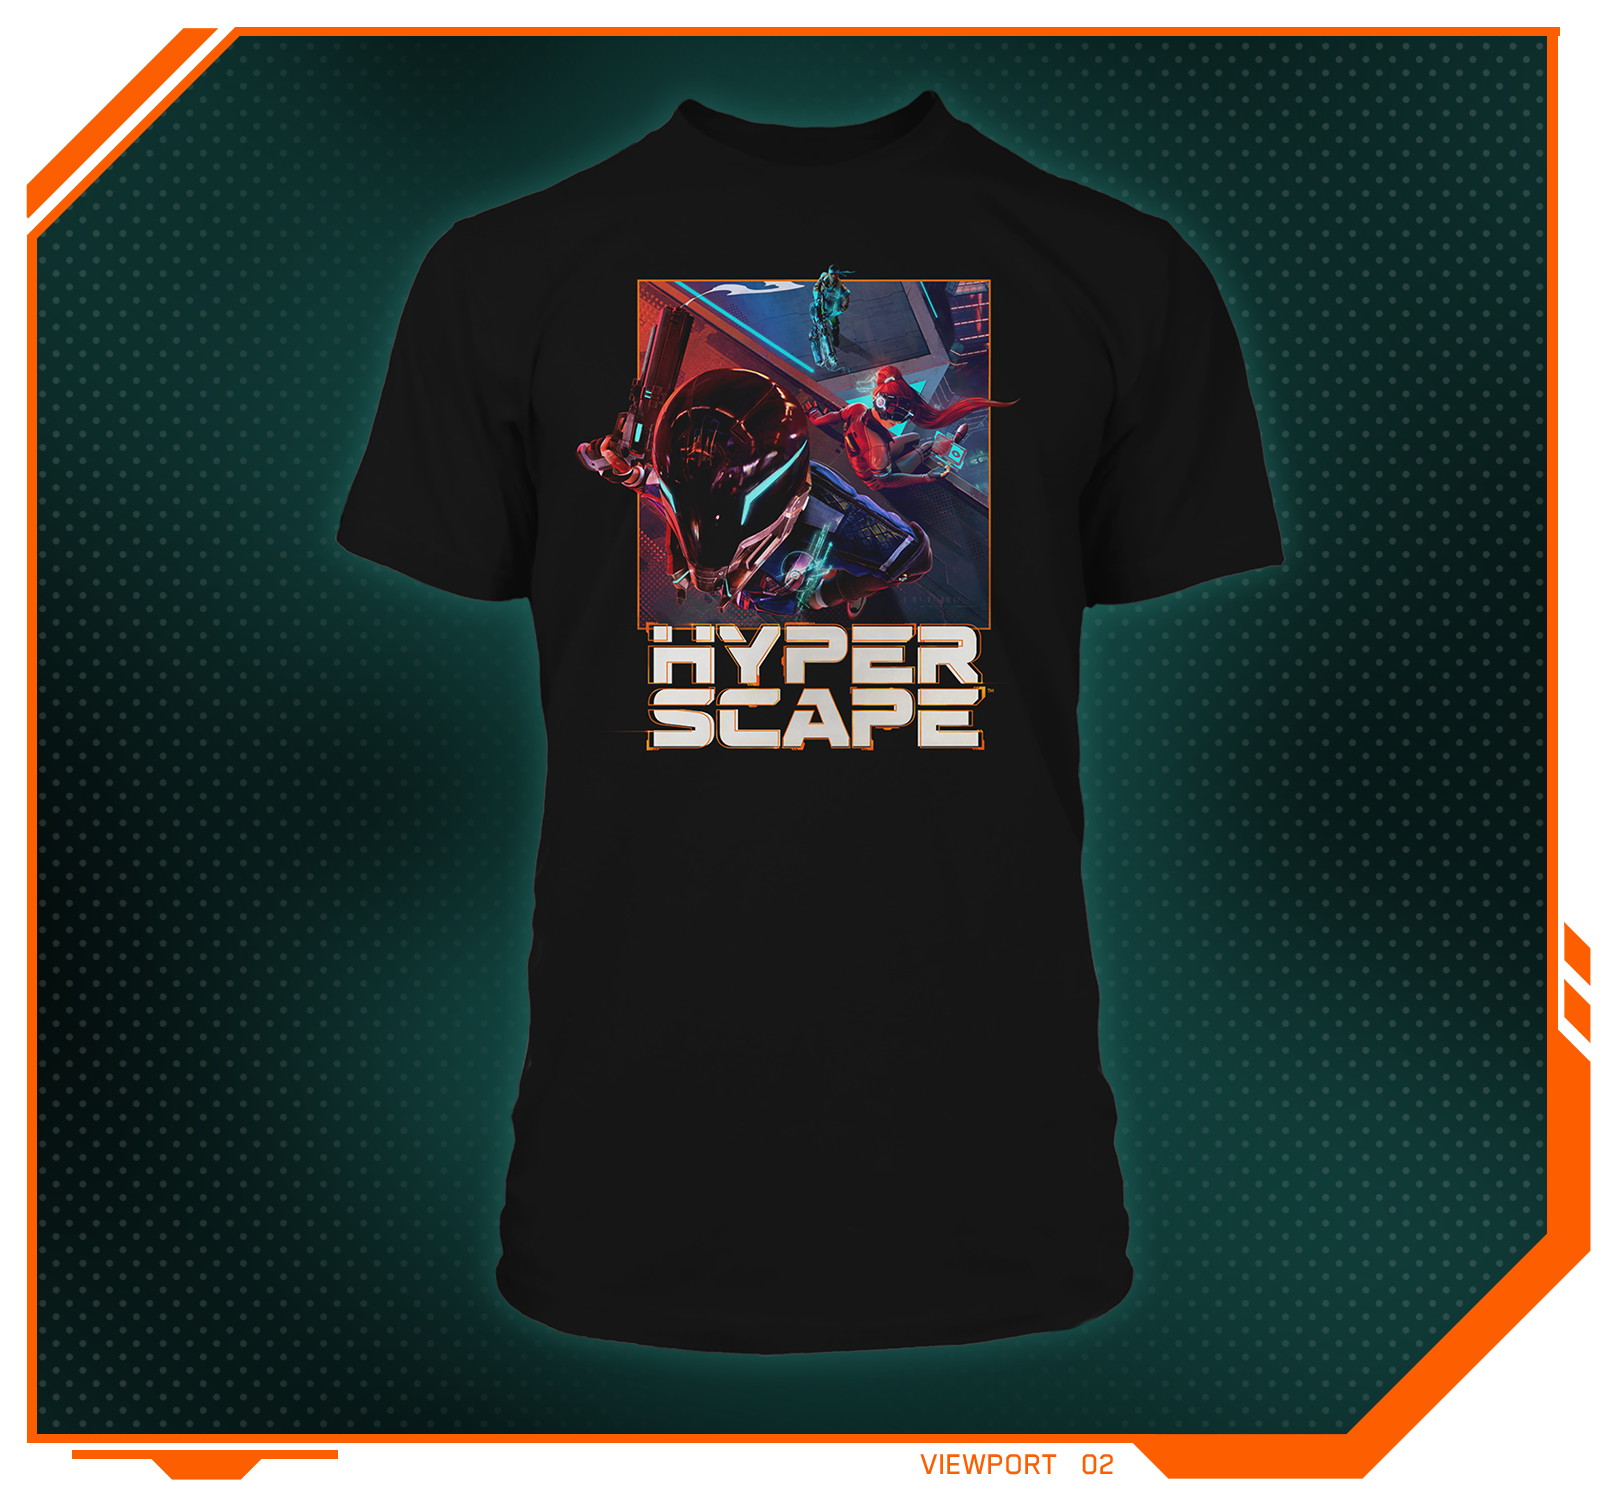 Stylized product image of the Hyper Scape Rooftop Team Up Men's Tee